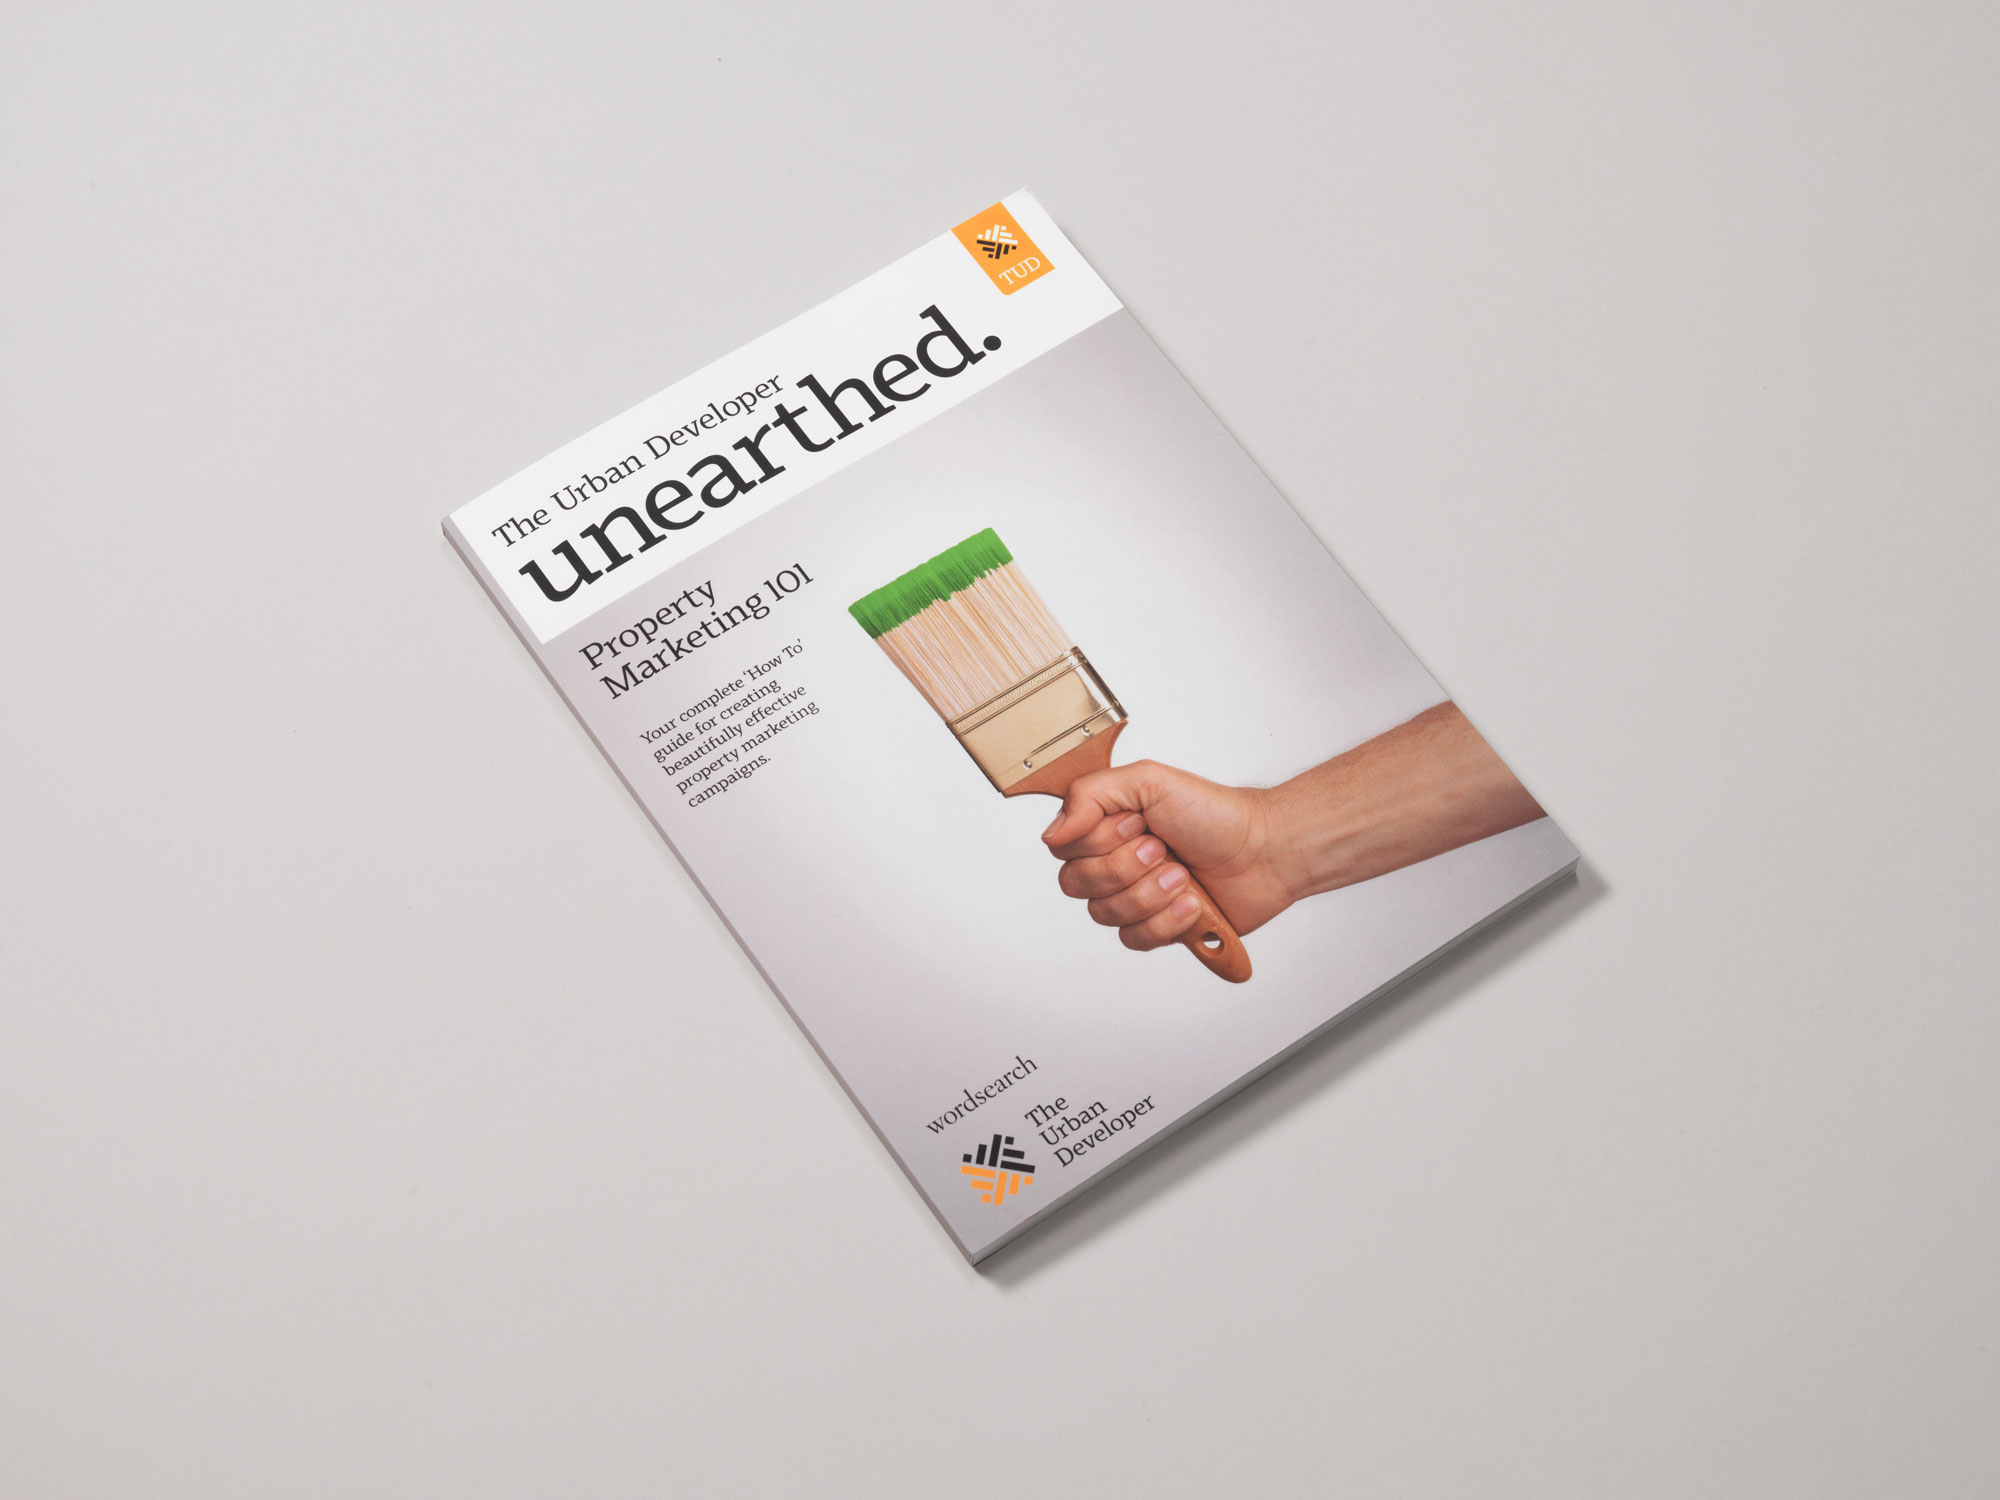 Real estate branding agency | Unearthed